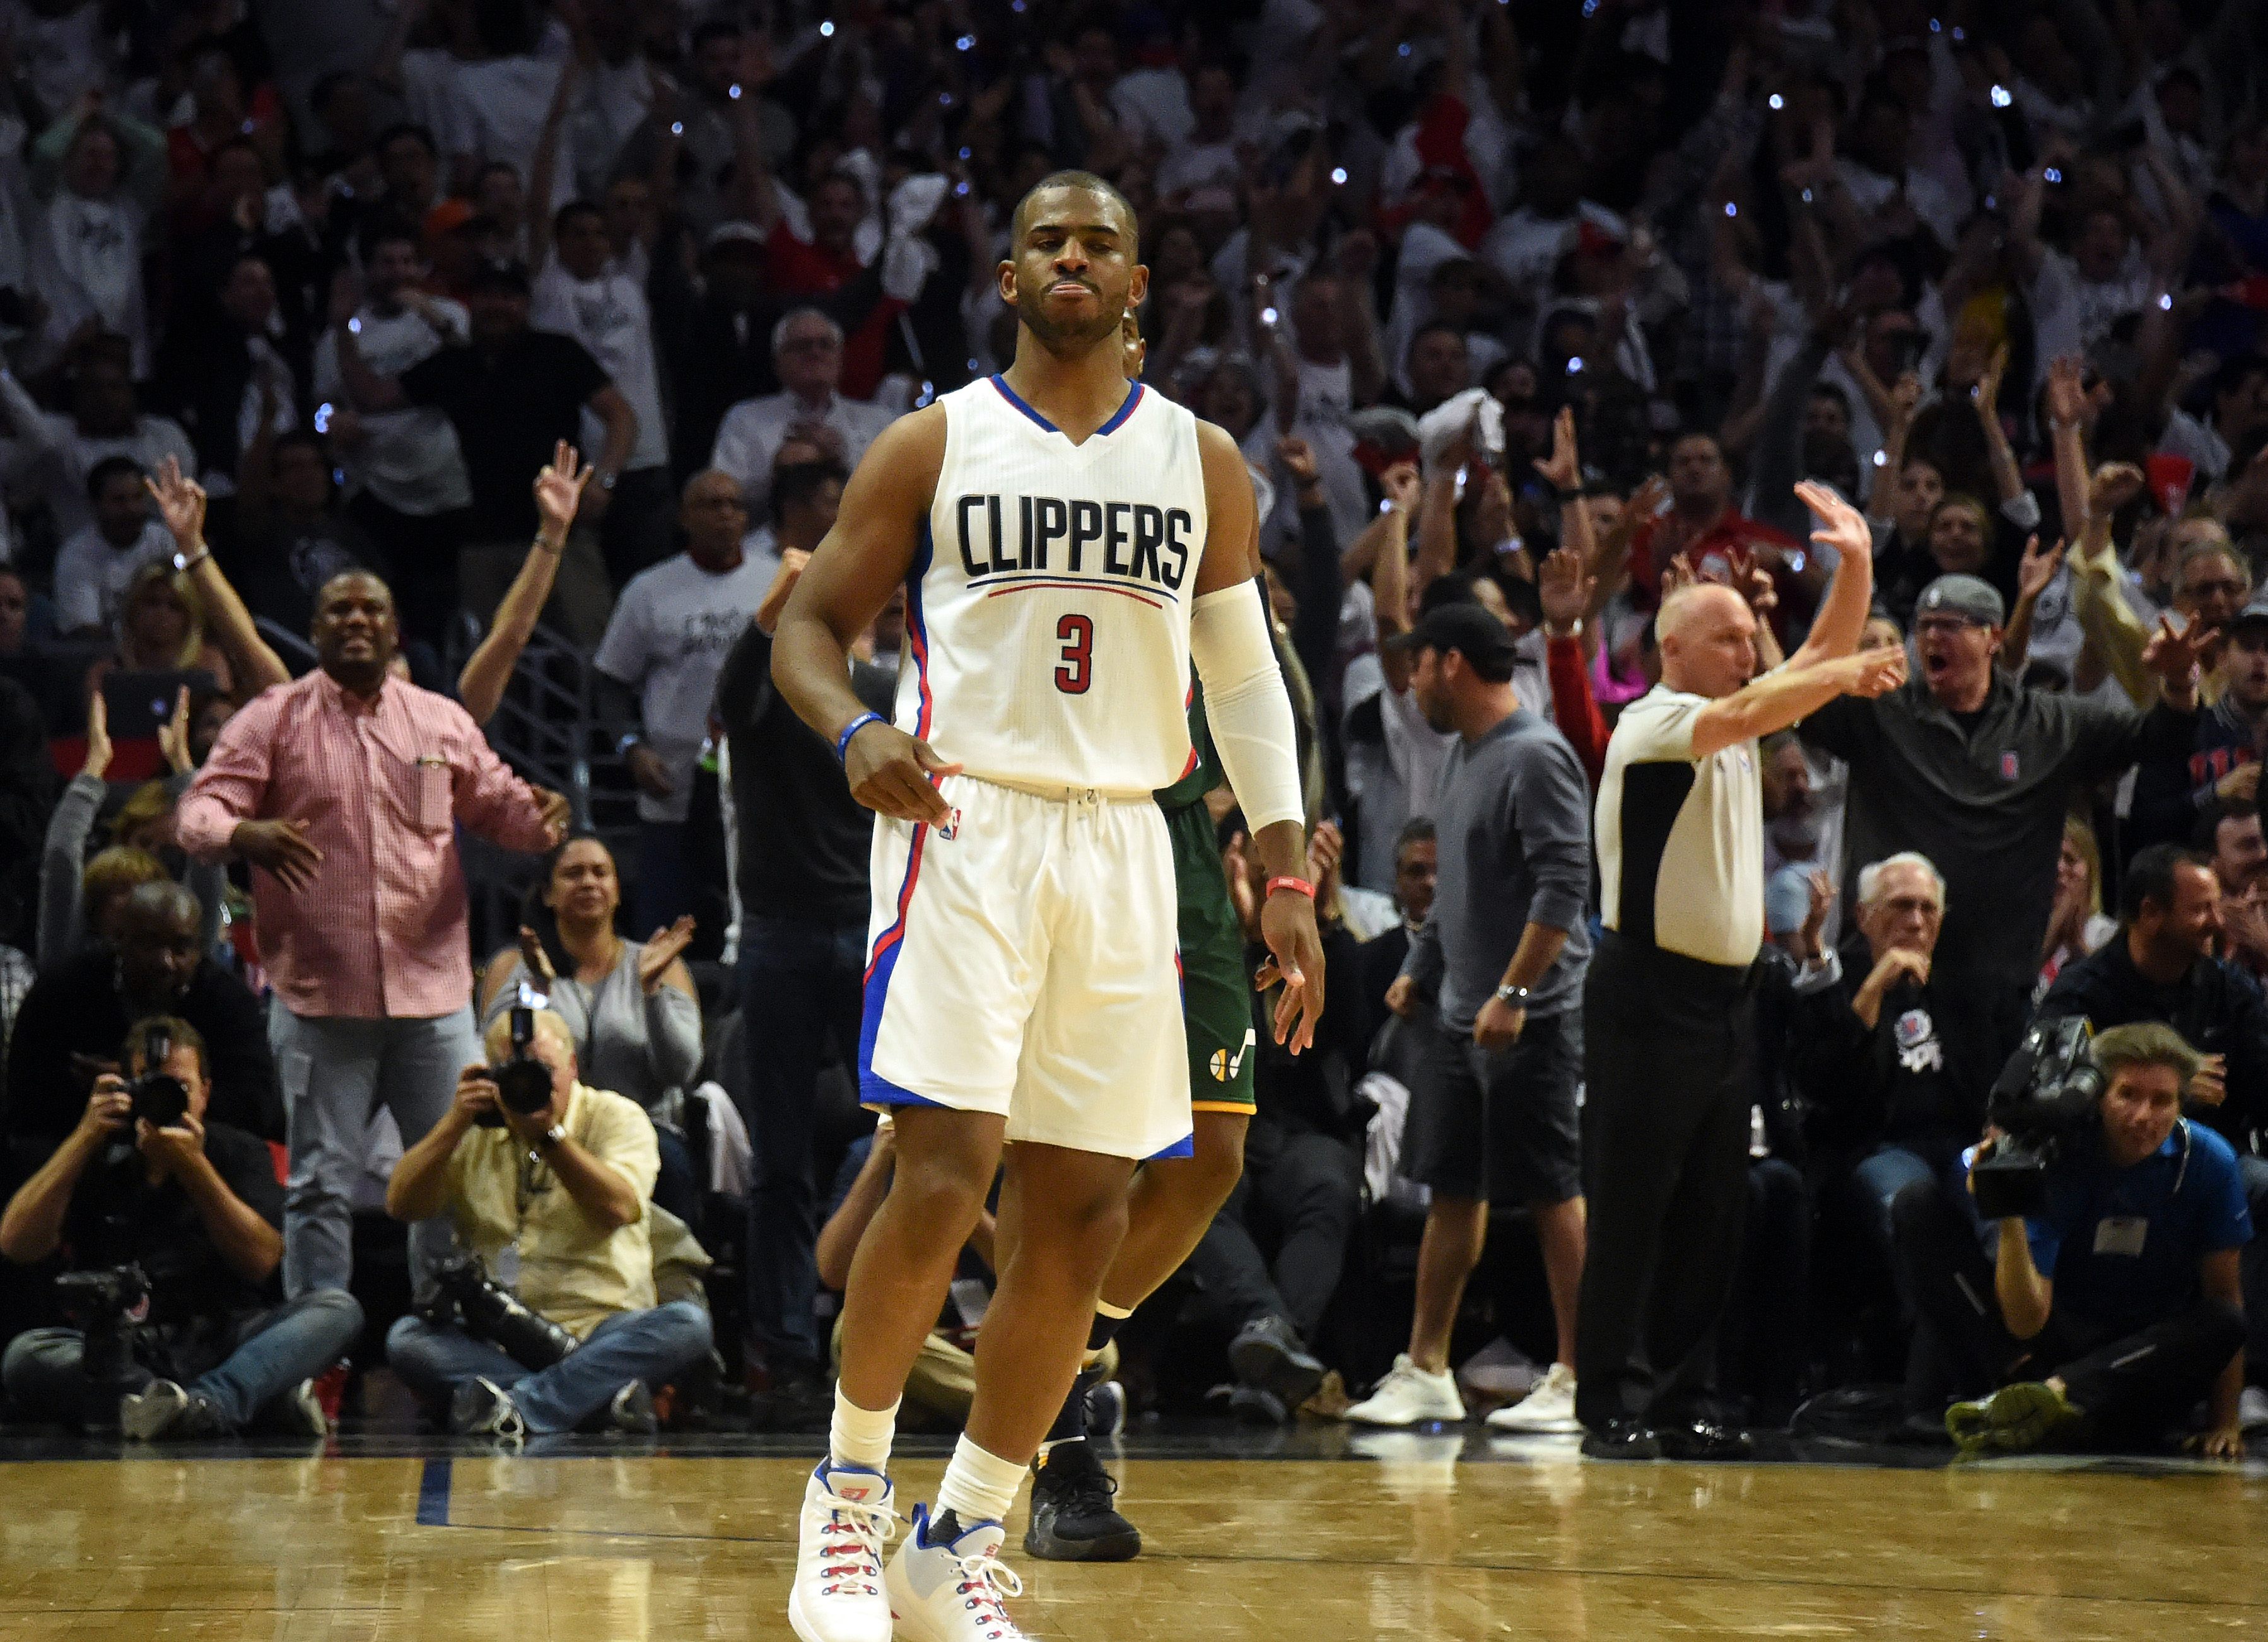 10031544-nba-playoffs-utah-jazz-at-los-angeles-clippers